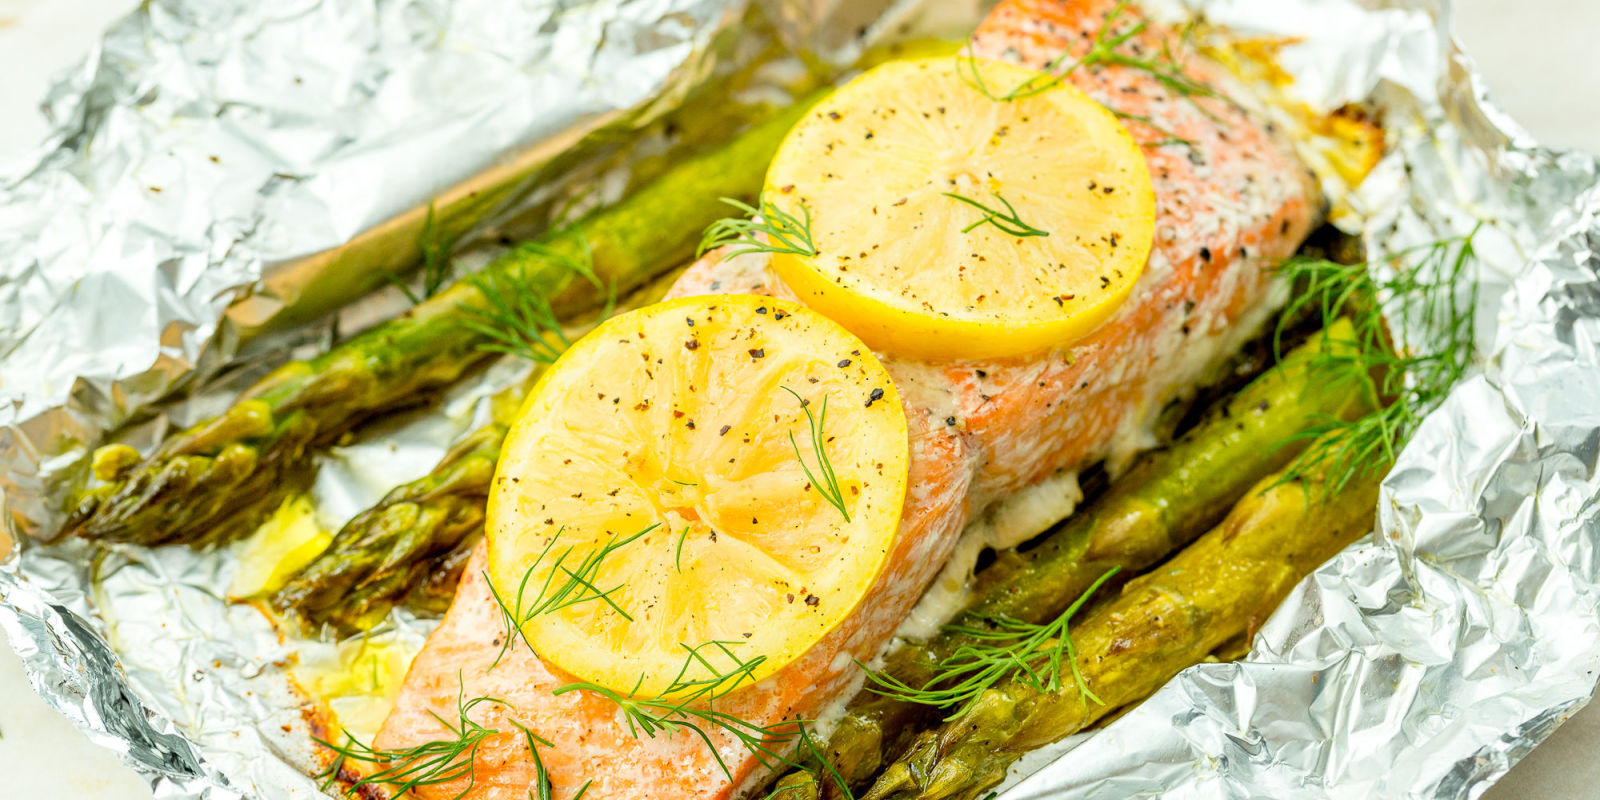 Best Grilled Salmon In Foil Recipe  How To Grill Salmon Foil Packets With  Asparagus  Delish